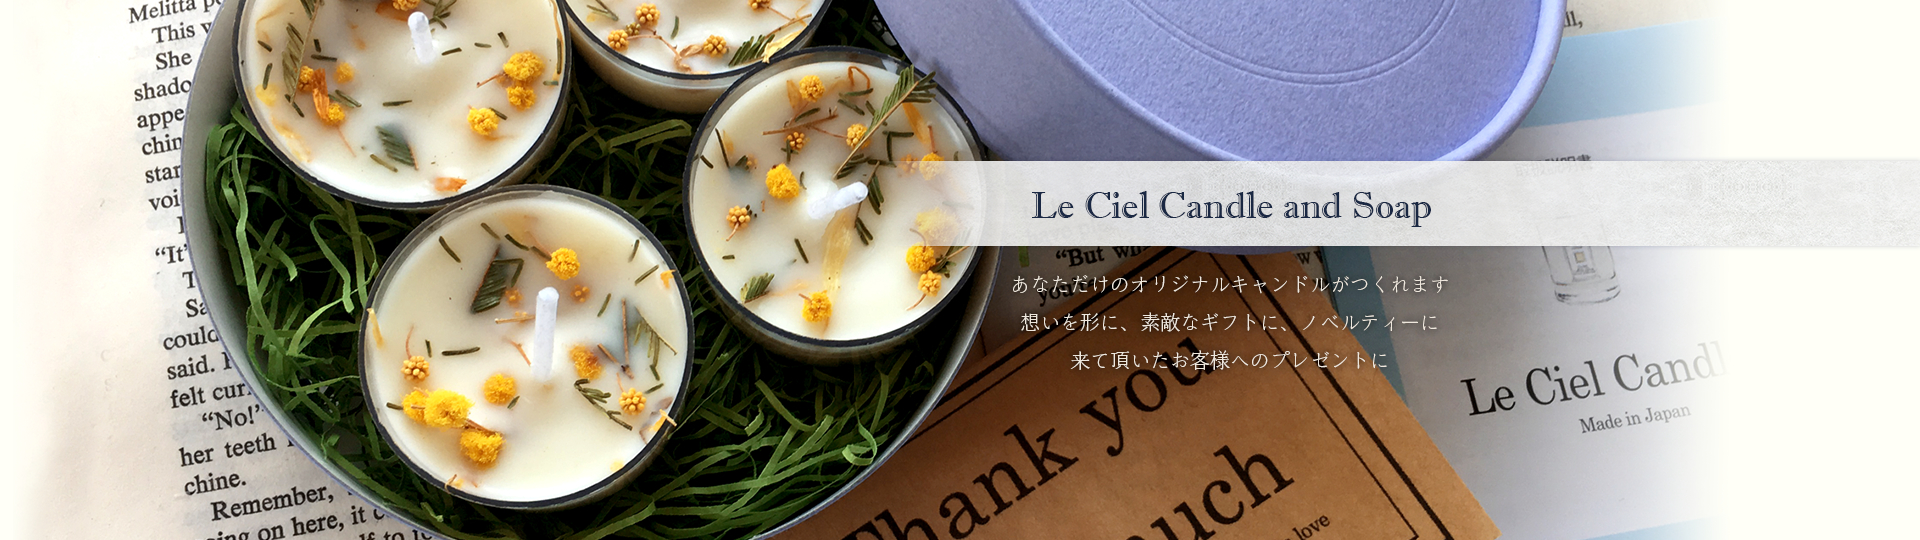 Le Ciel Candle and Soap